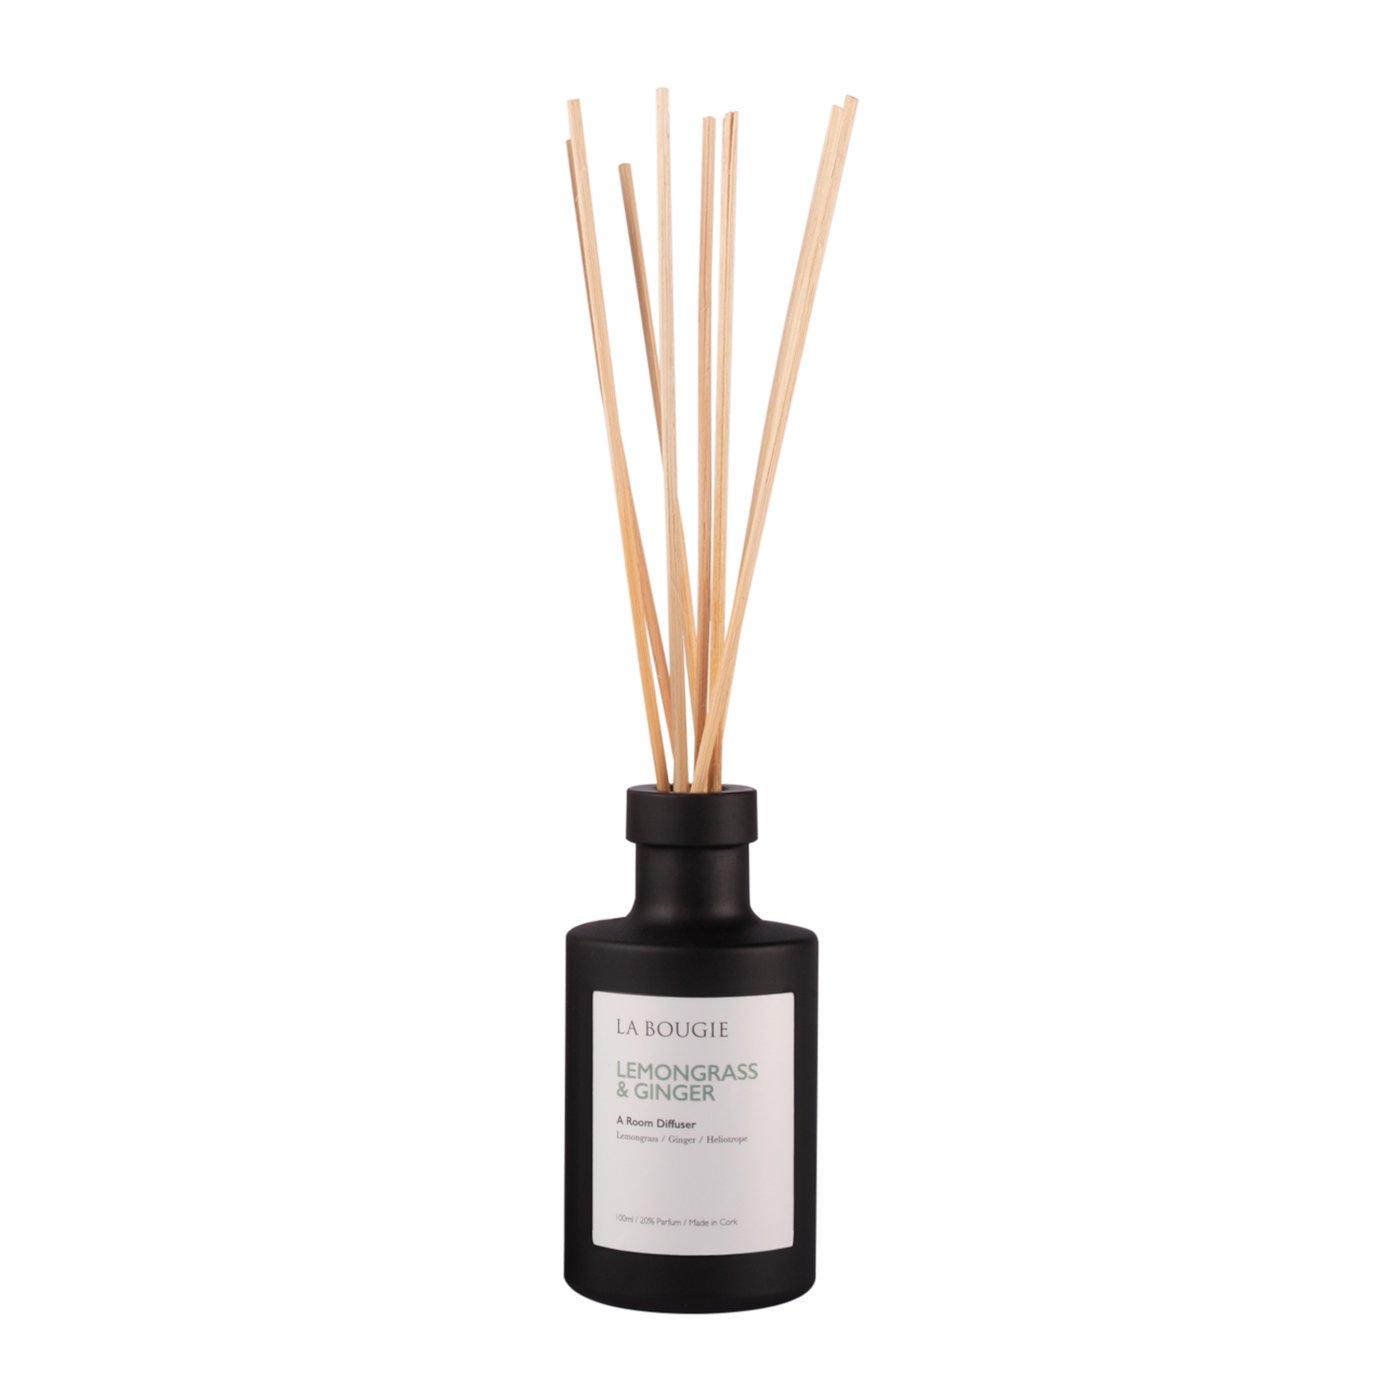 La Bougie - Lemongrass & Ginger Room Diffuser